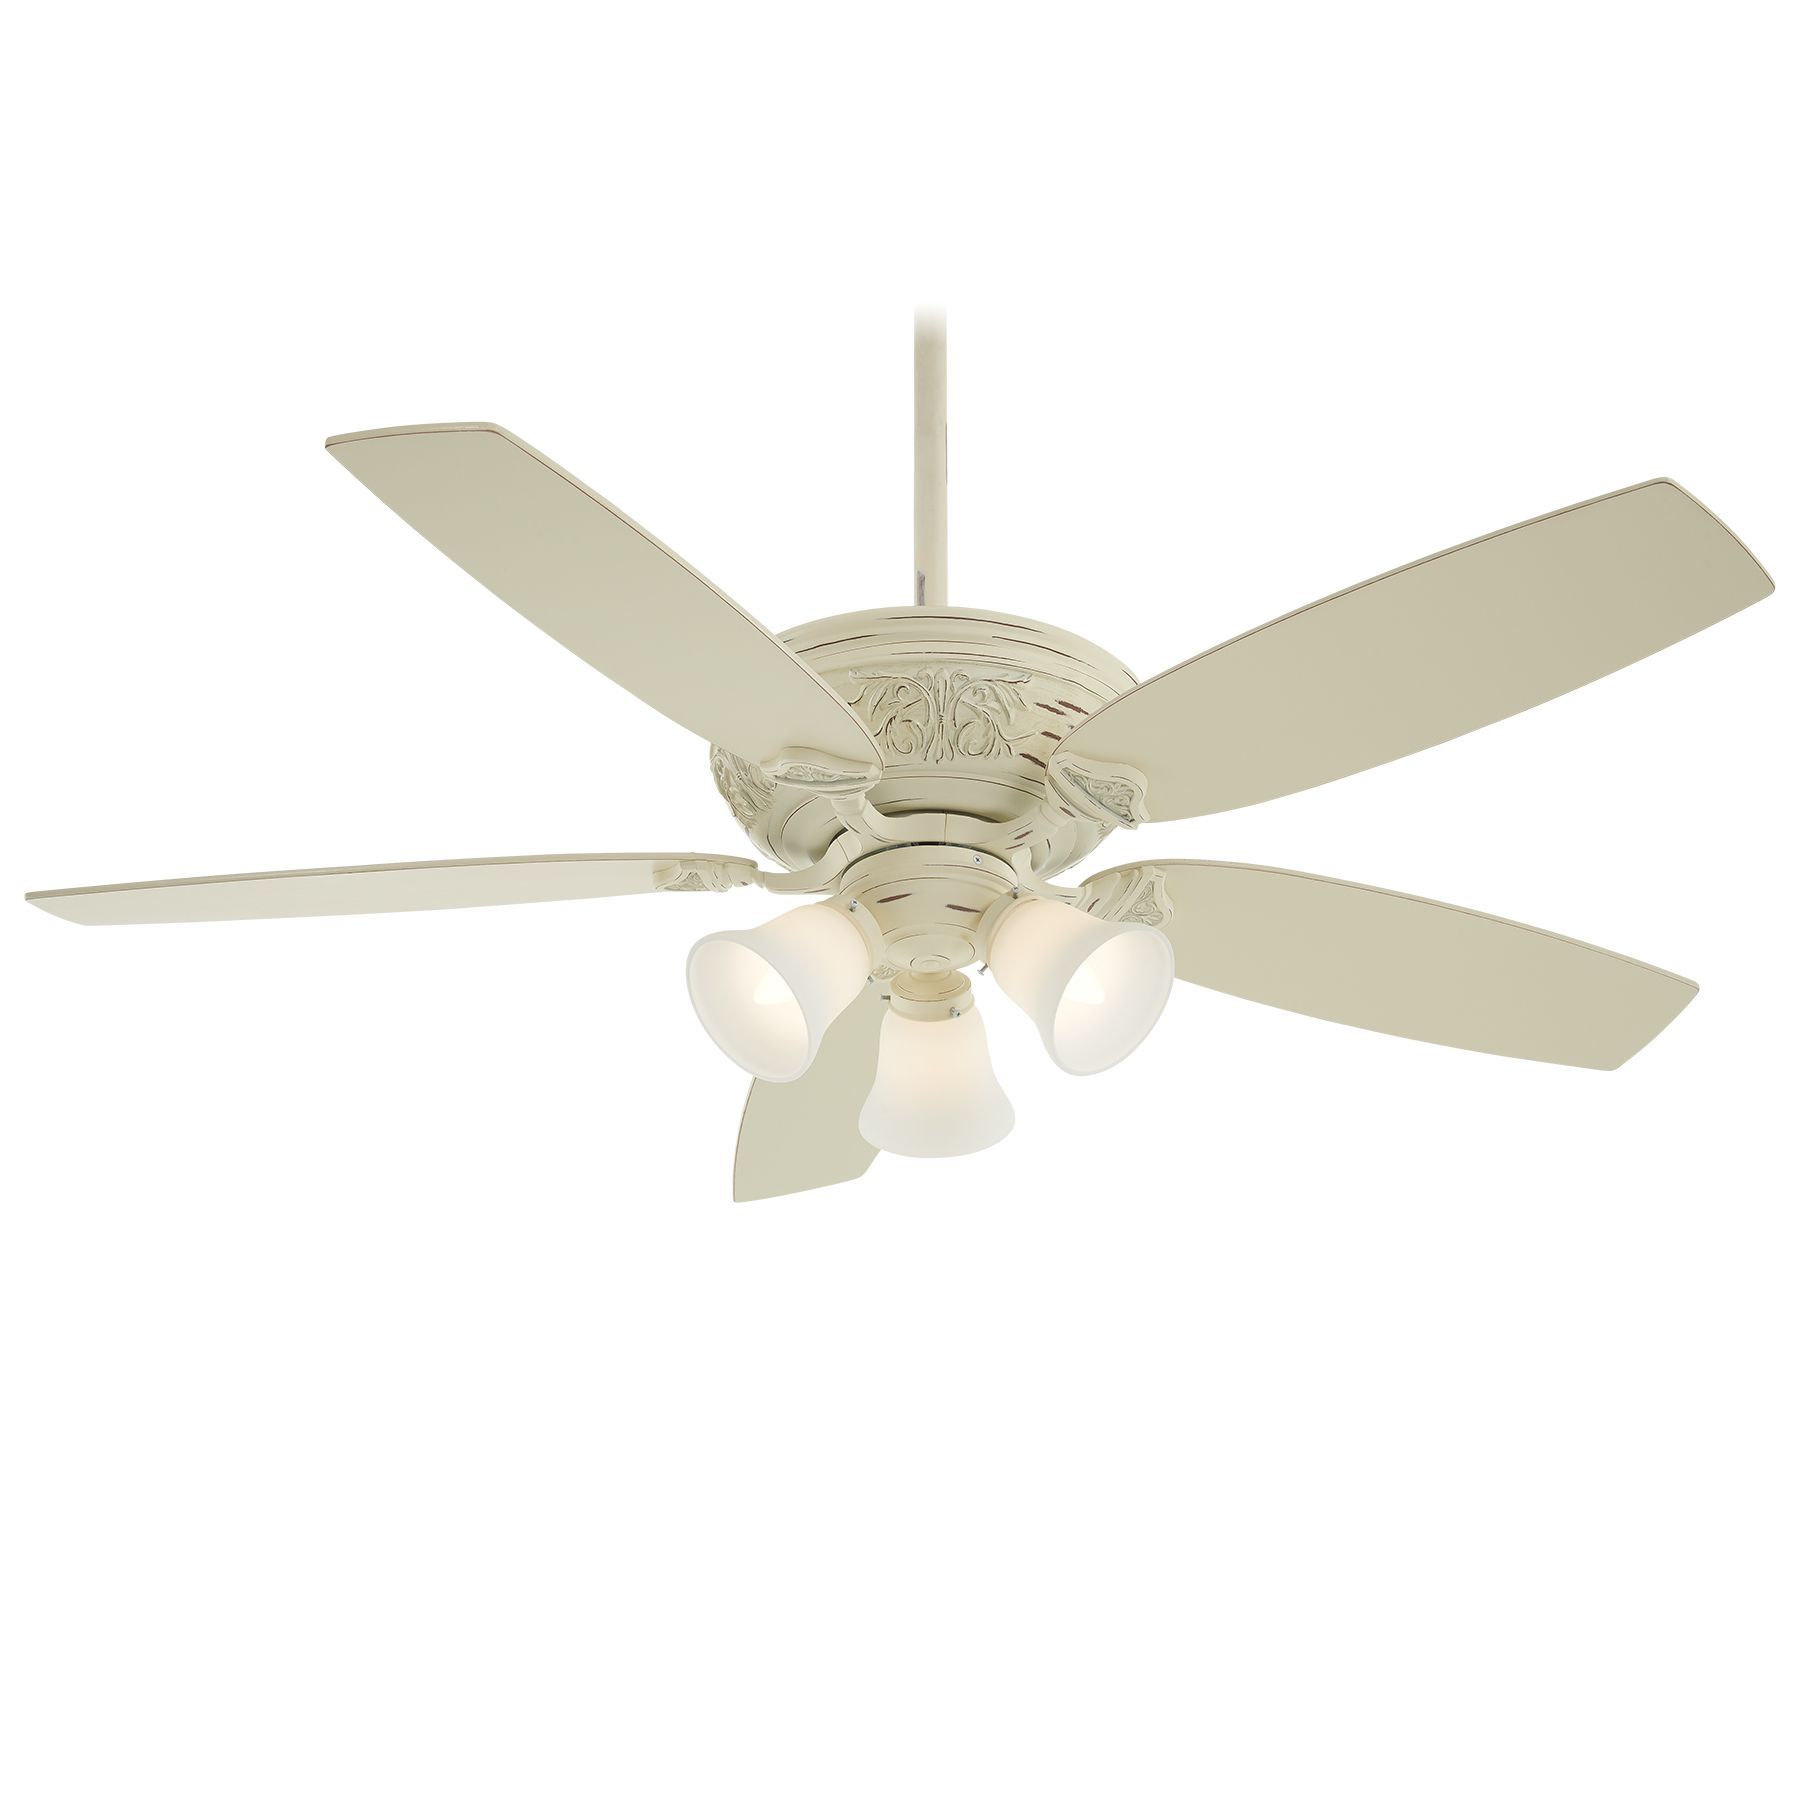 Image With No Description Ceiling Fan With Light Ceiling Fan With Remote Ceiling Fan